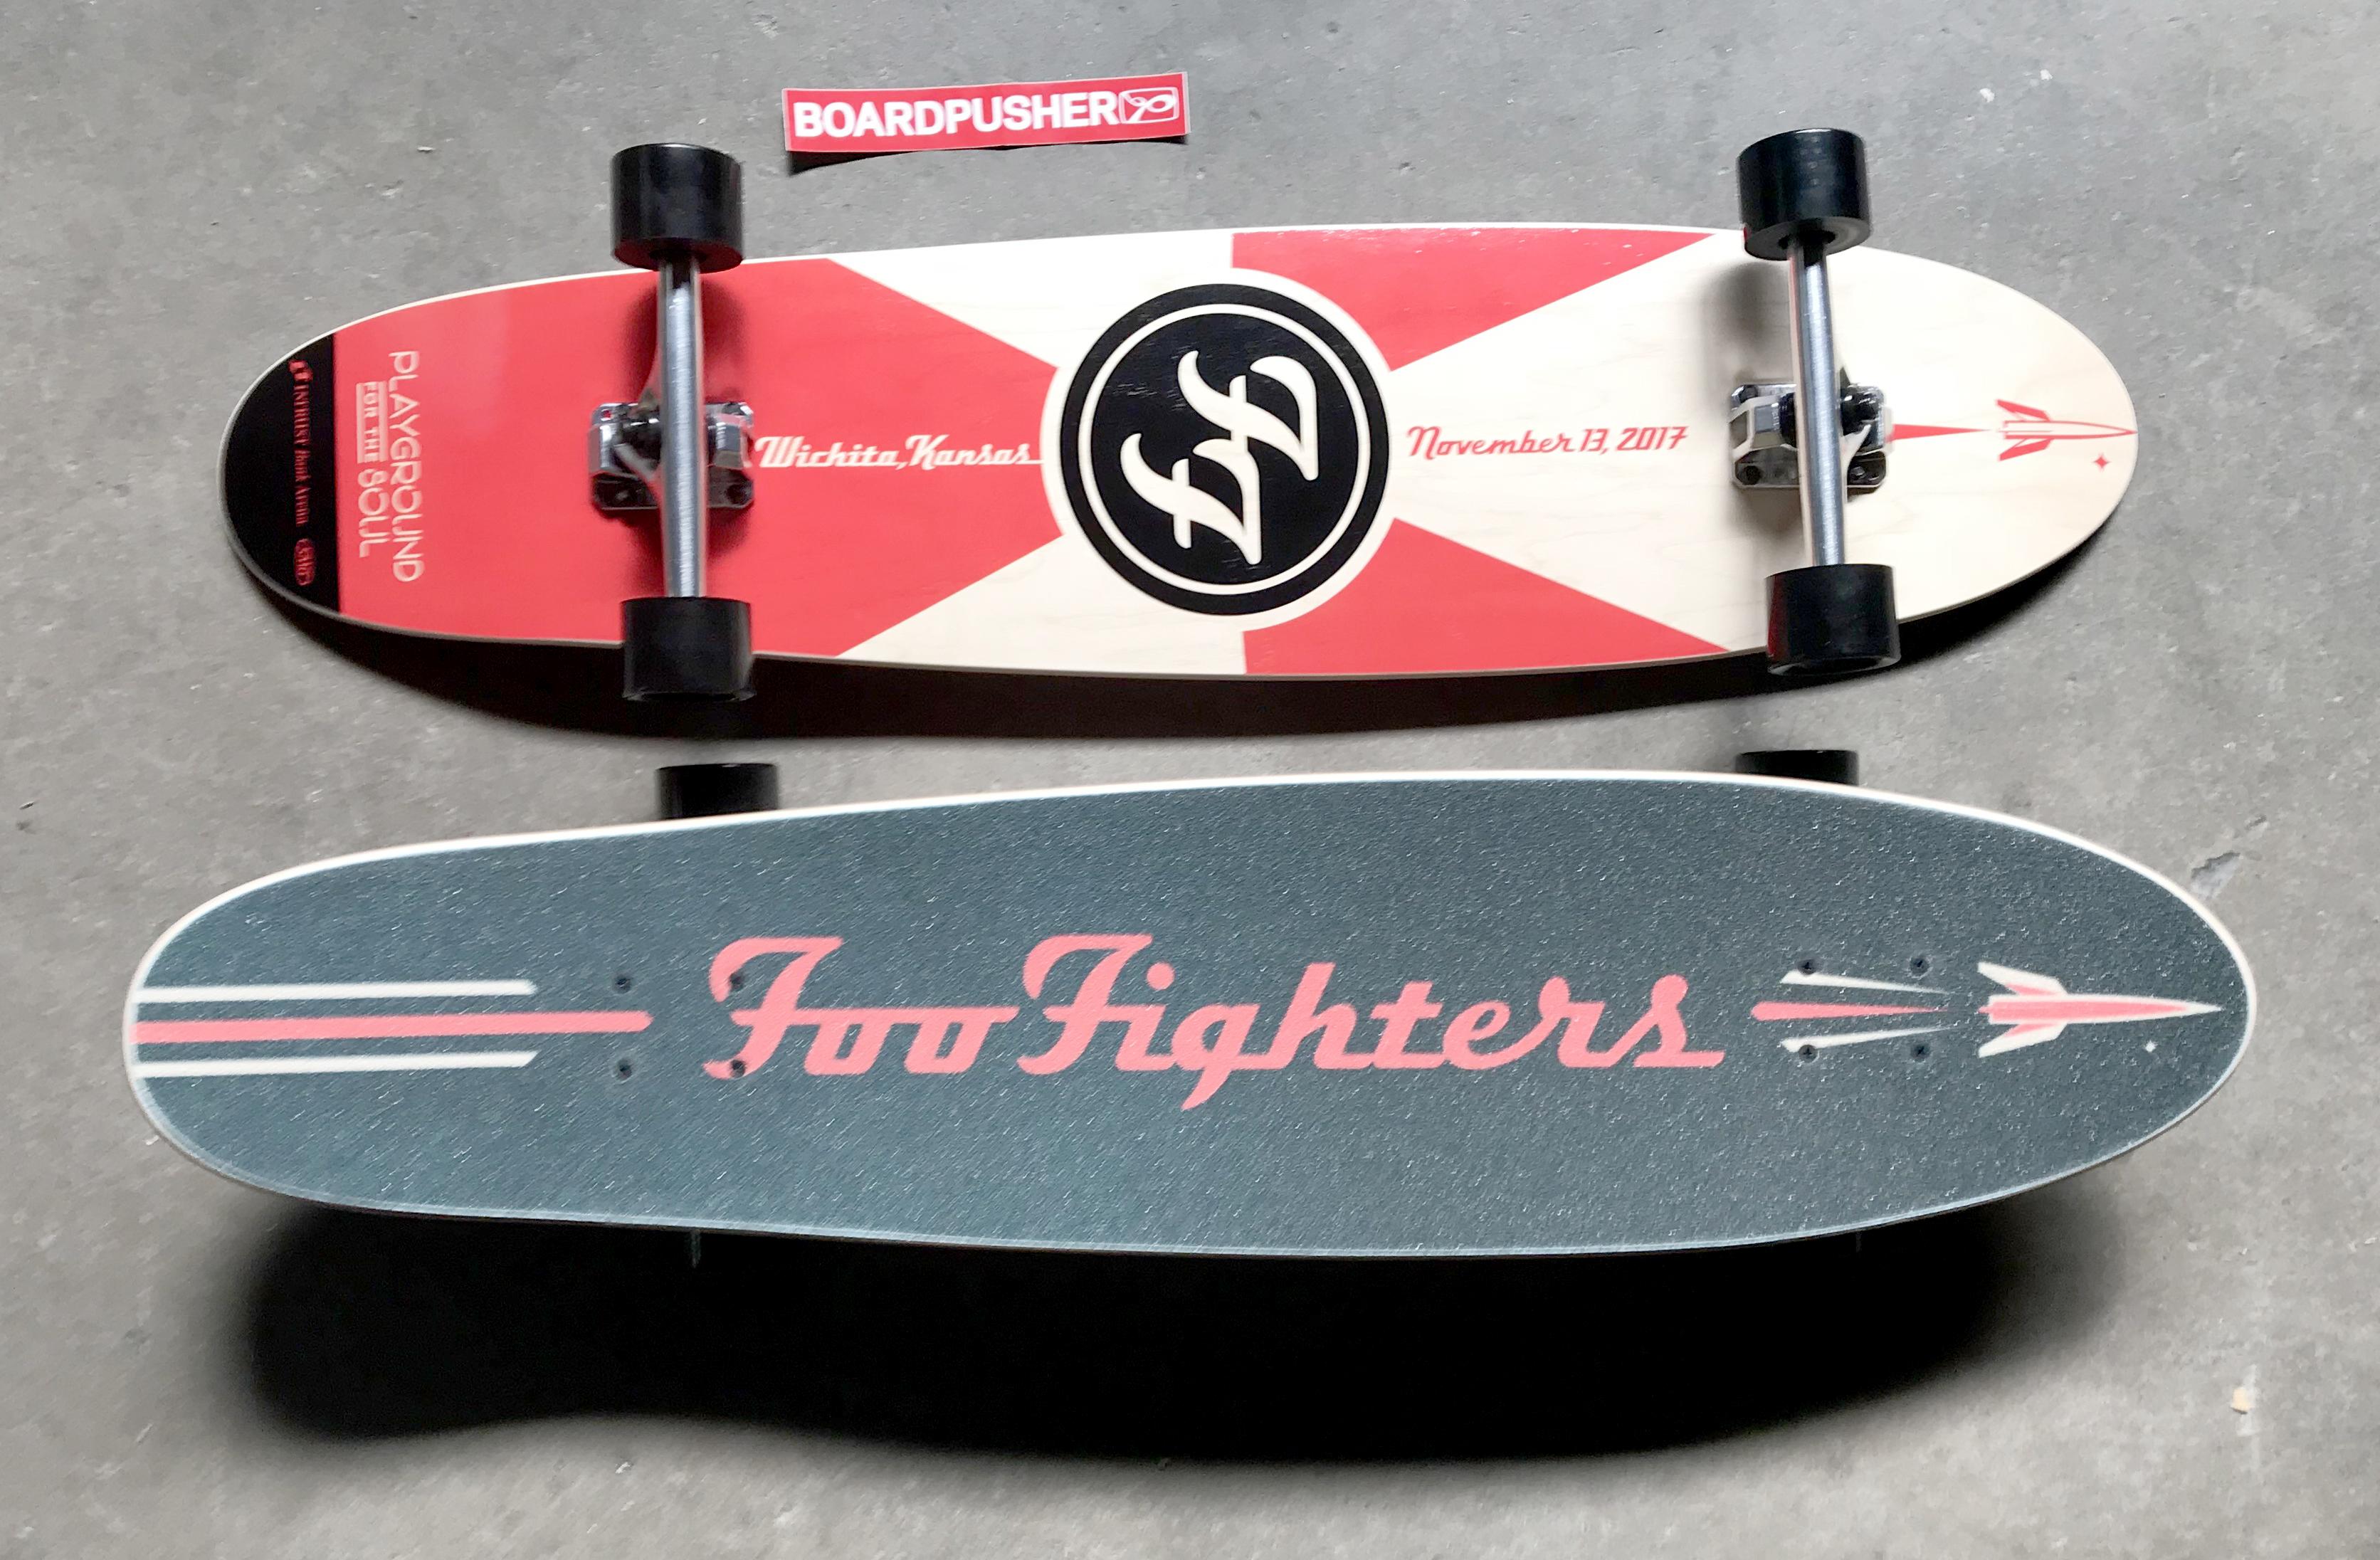 Featured Deck and Grip of the Day: Foo Fighters Longboard by